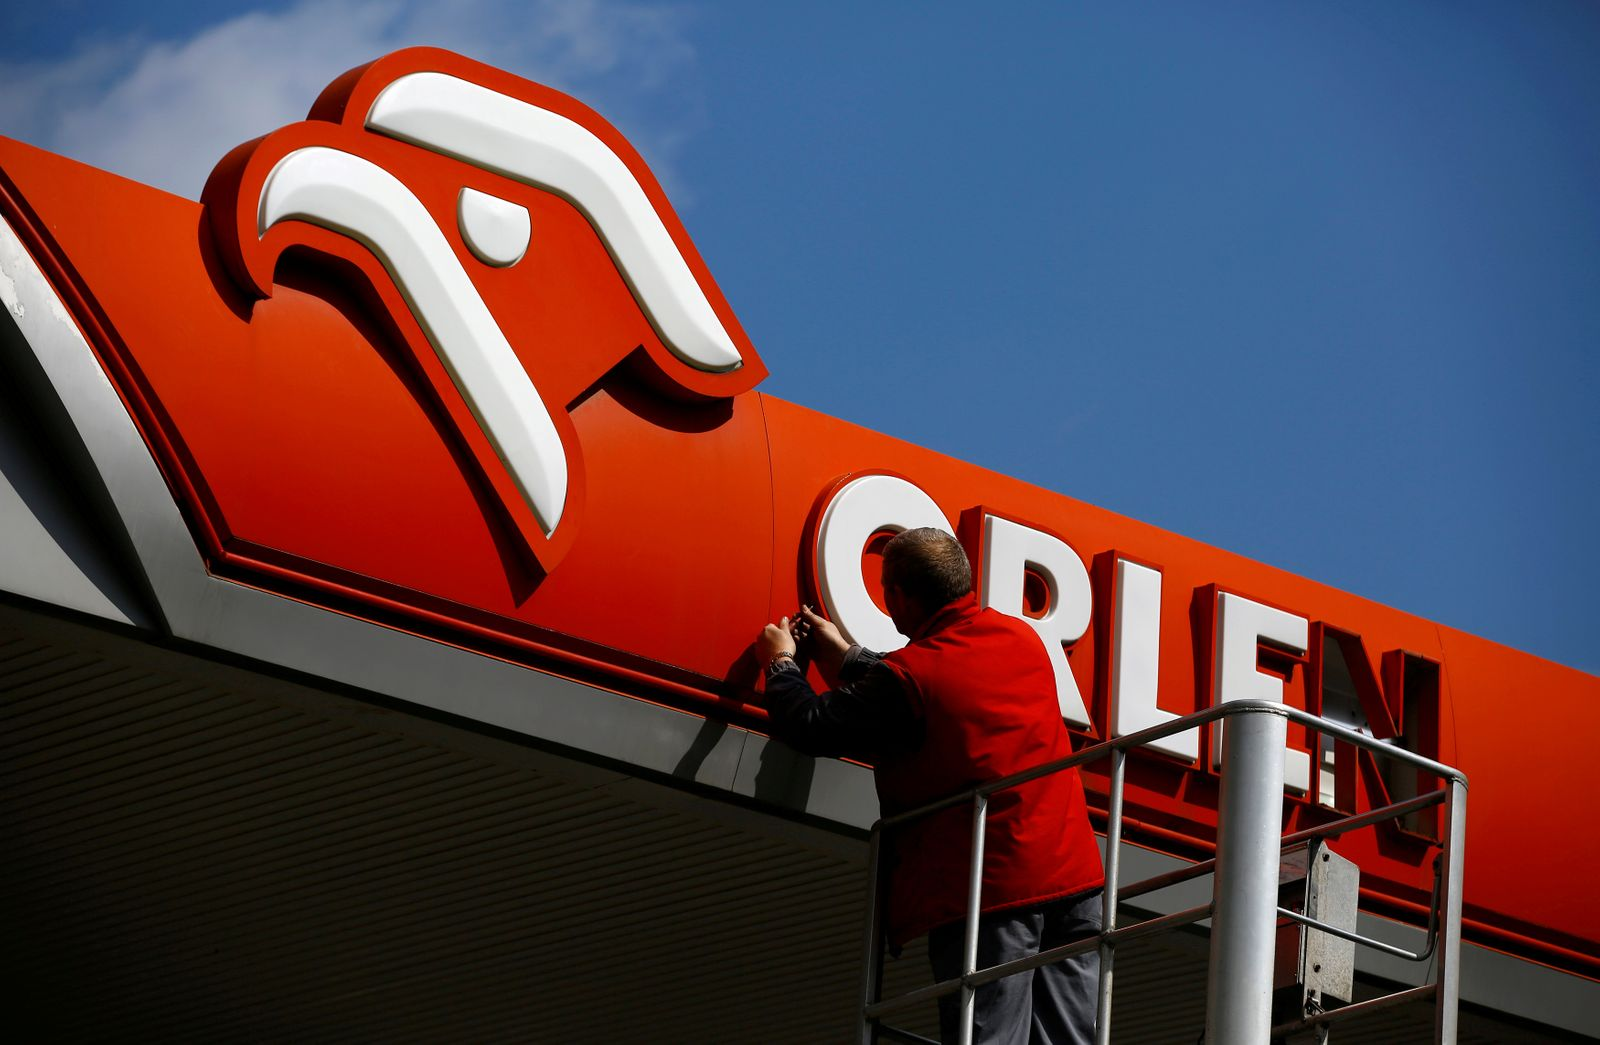 FILE PHOTO: A man fixes PKN Orlen logo, Poland's top oil refiner, at their petrol station in Warsaw